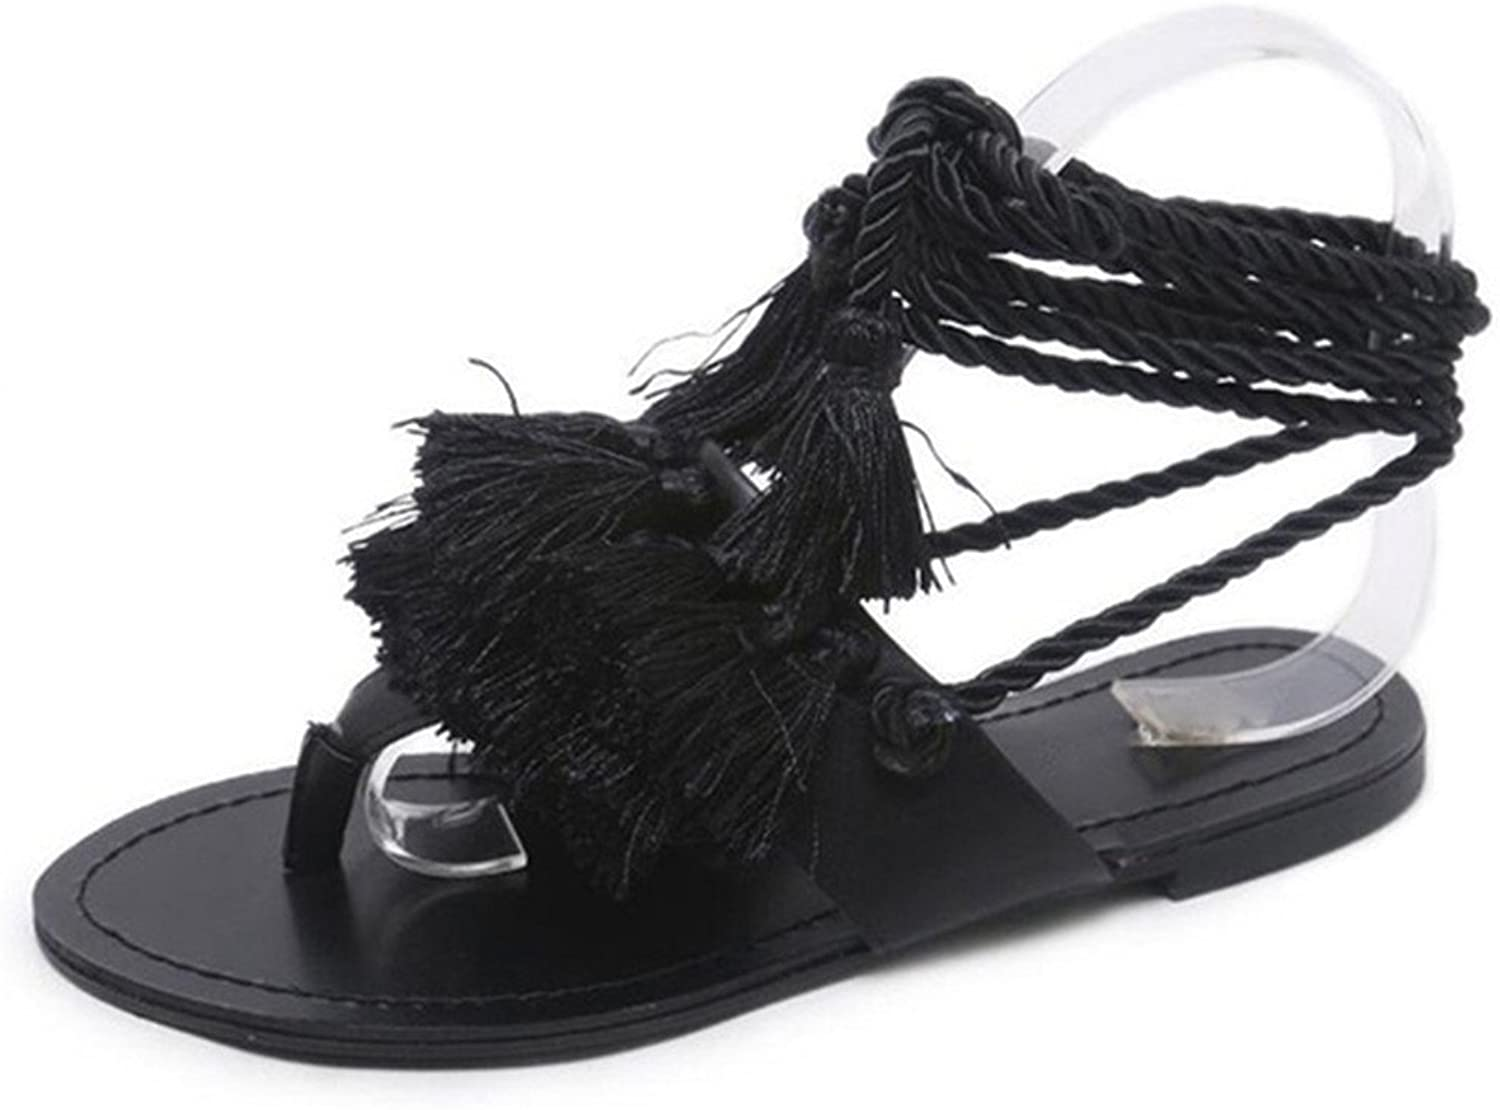 Giles Jones Flip Flops Flat Sandals for Women,Bohemia Tassel Lace Up Clip Toe Beach shoes